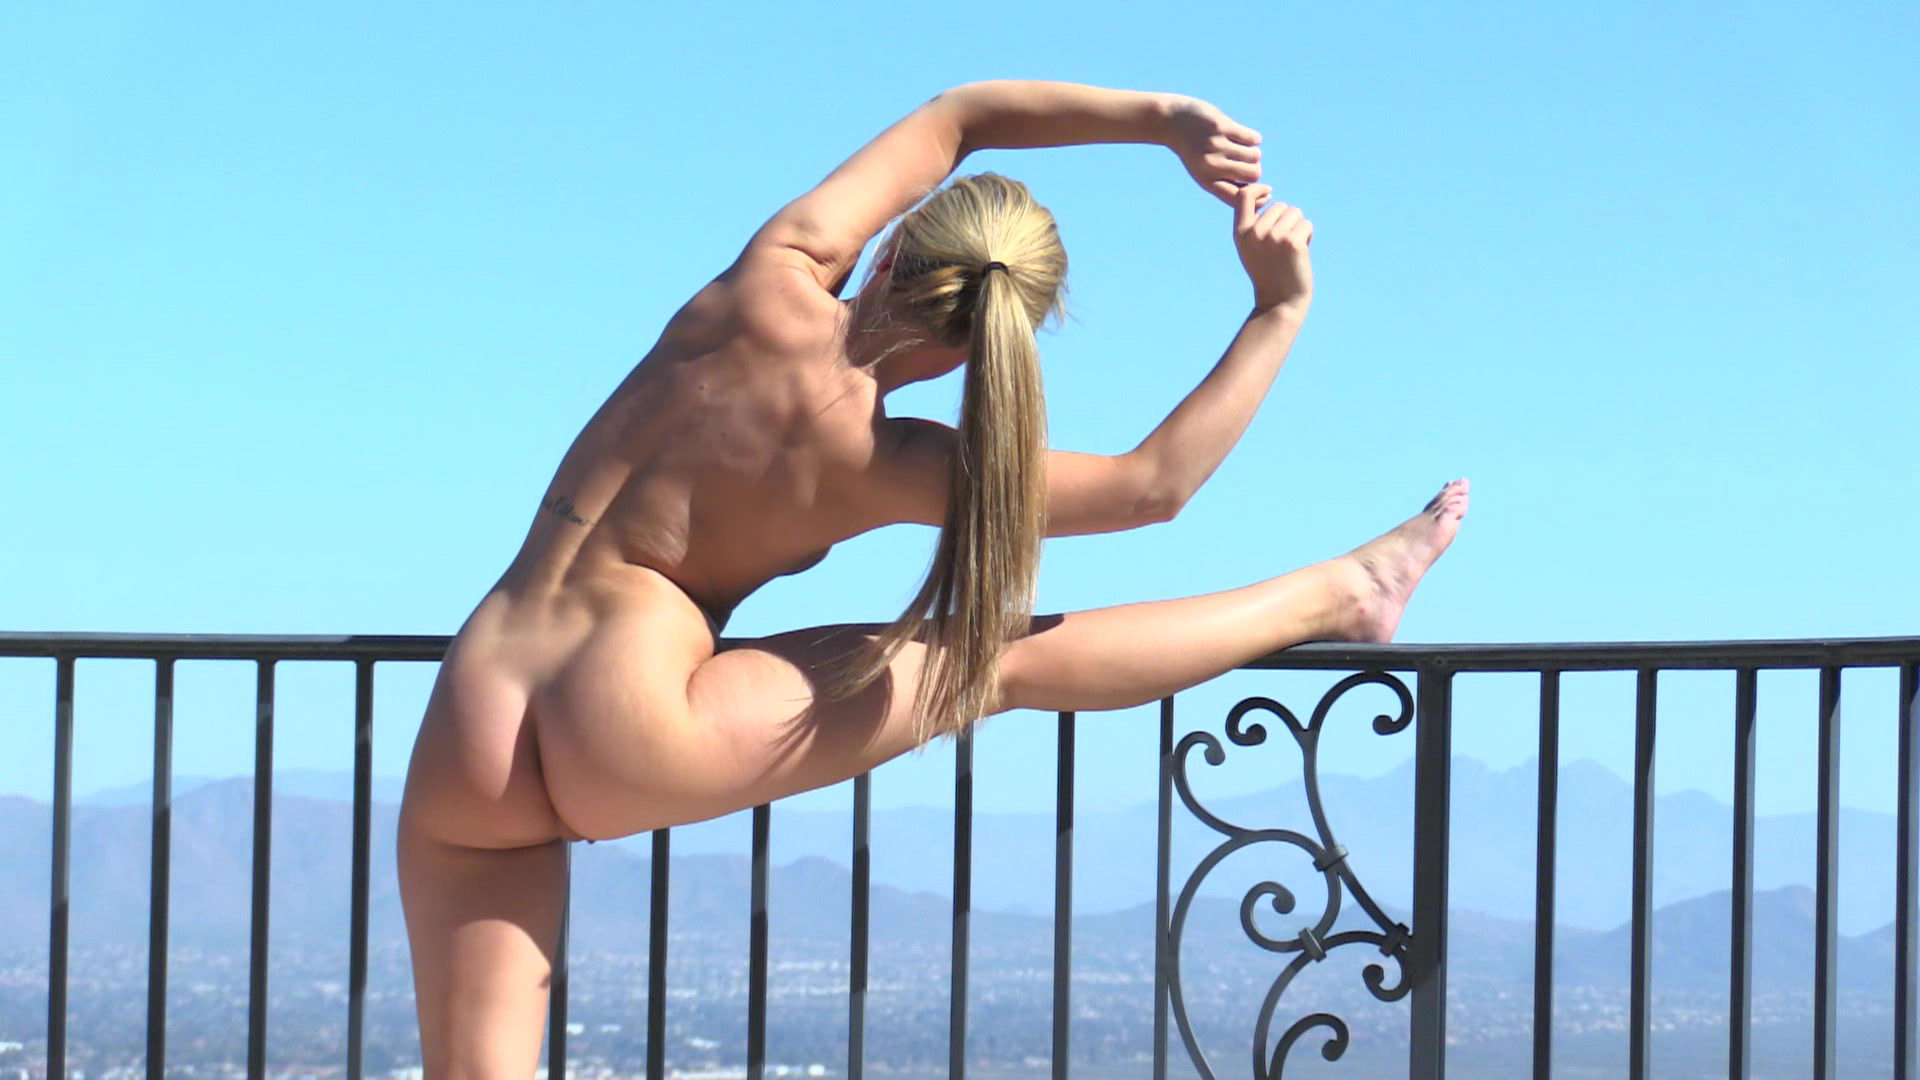 FTV Sydney Stretching on the Roof